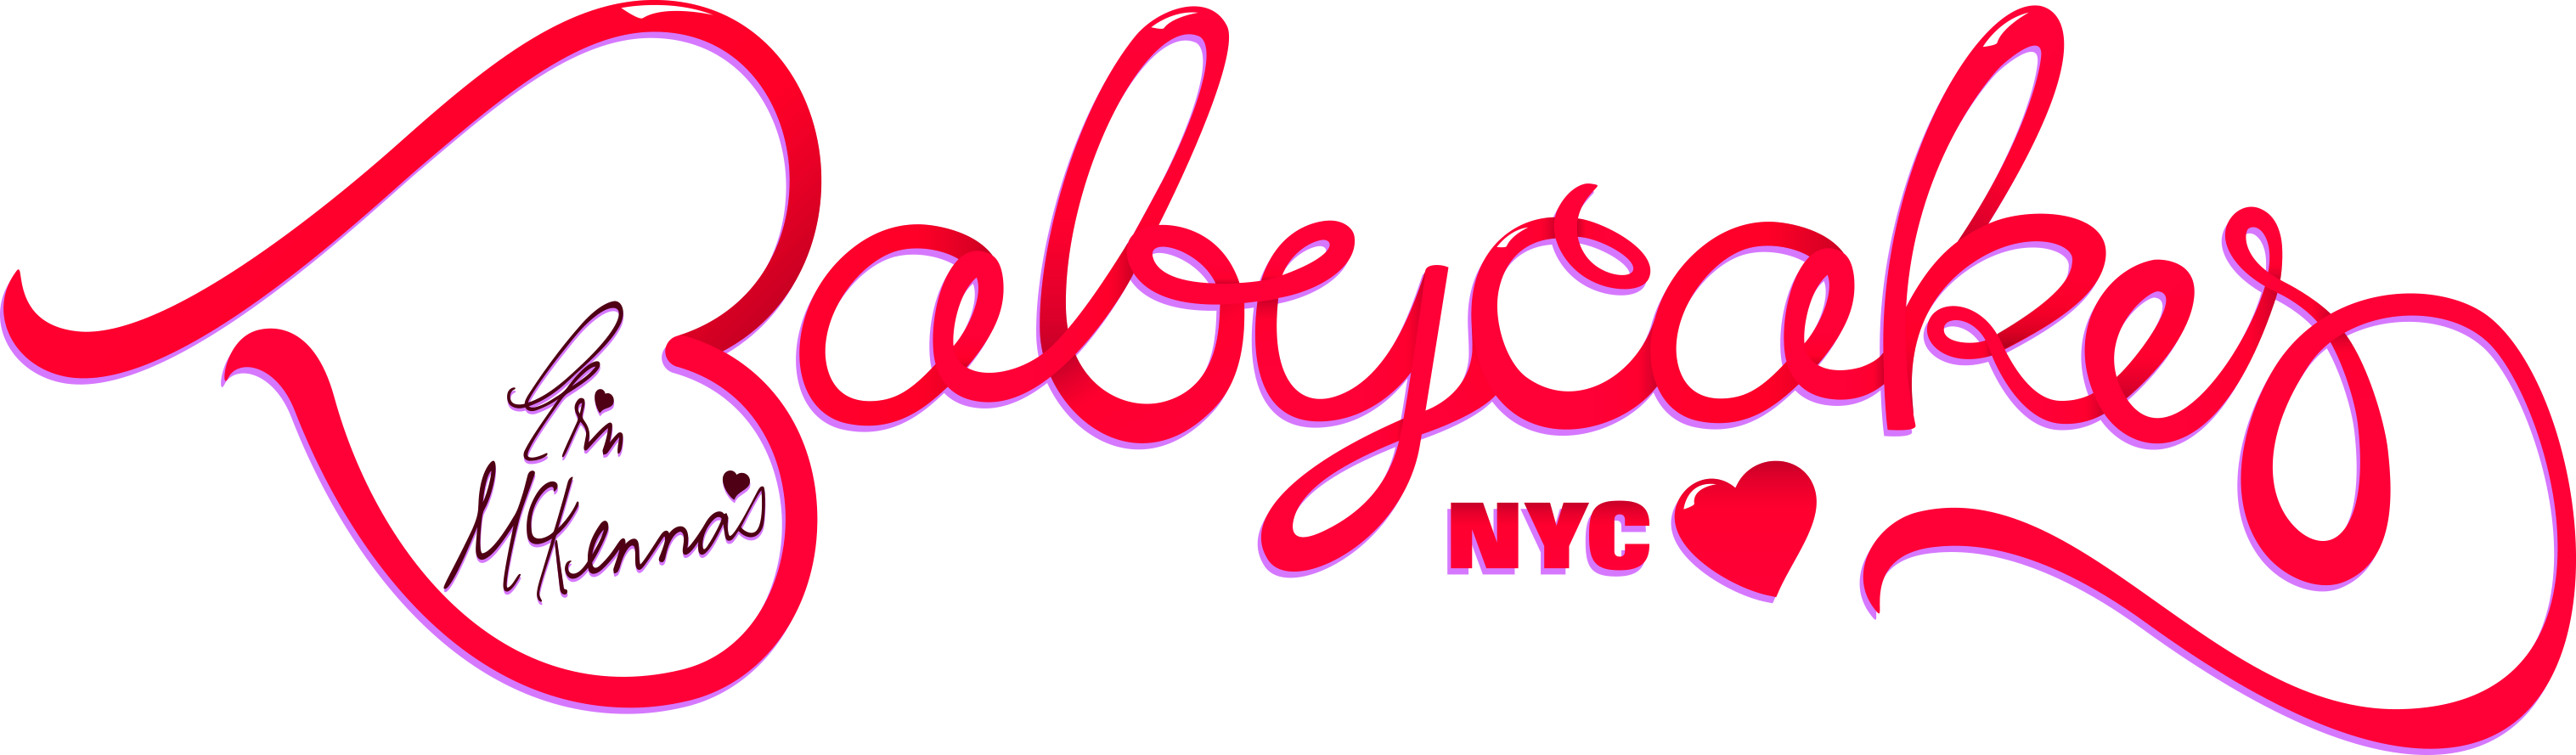 The BabyCakes NYC Blog